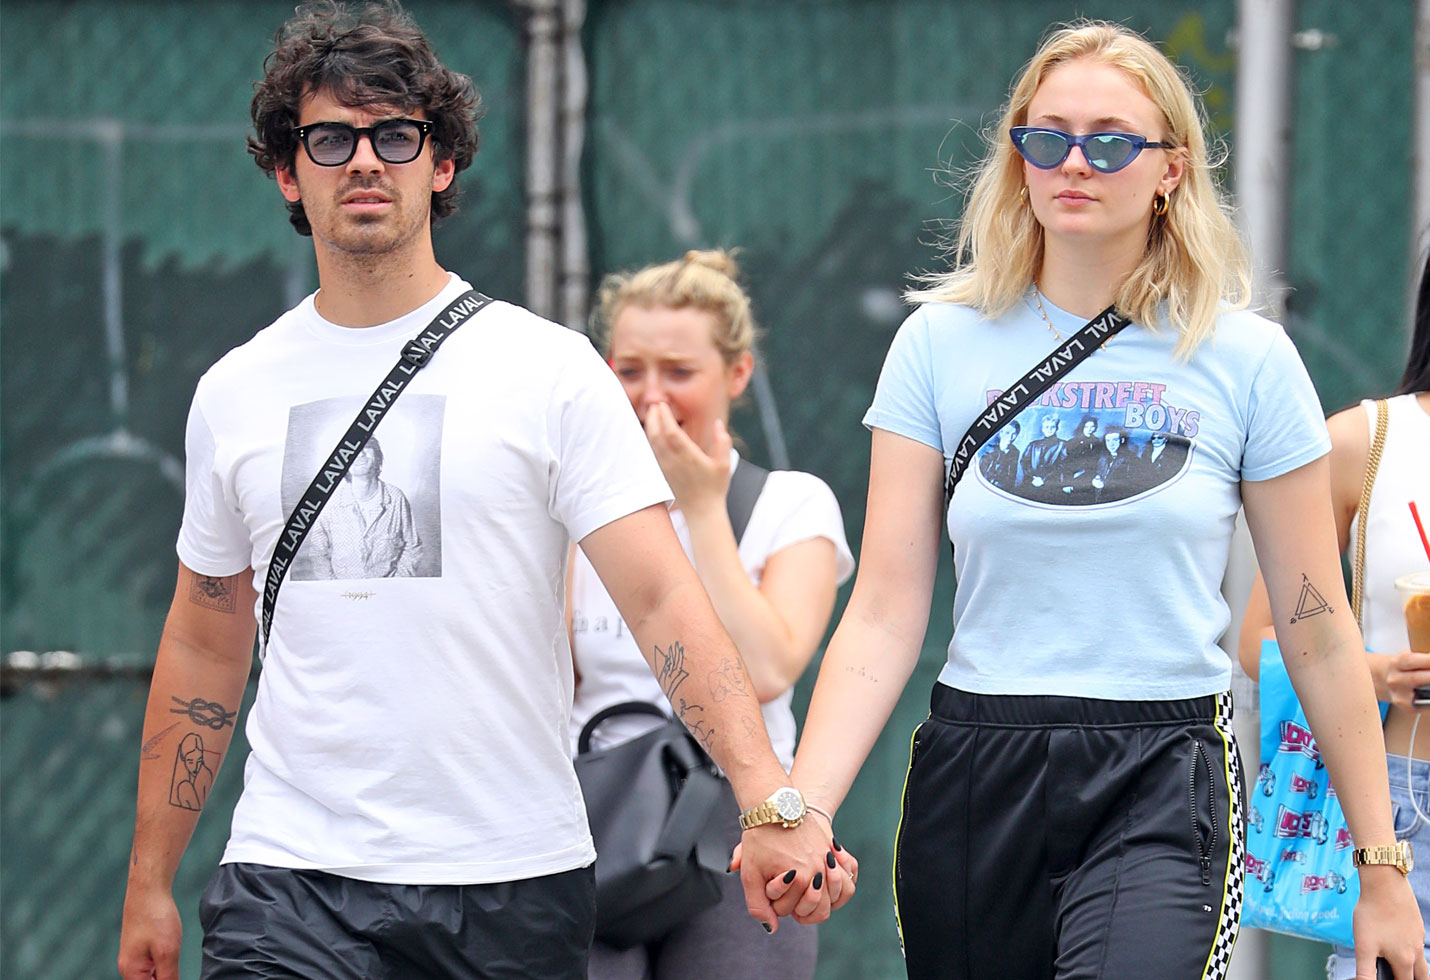 who is dating sophie turner